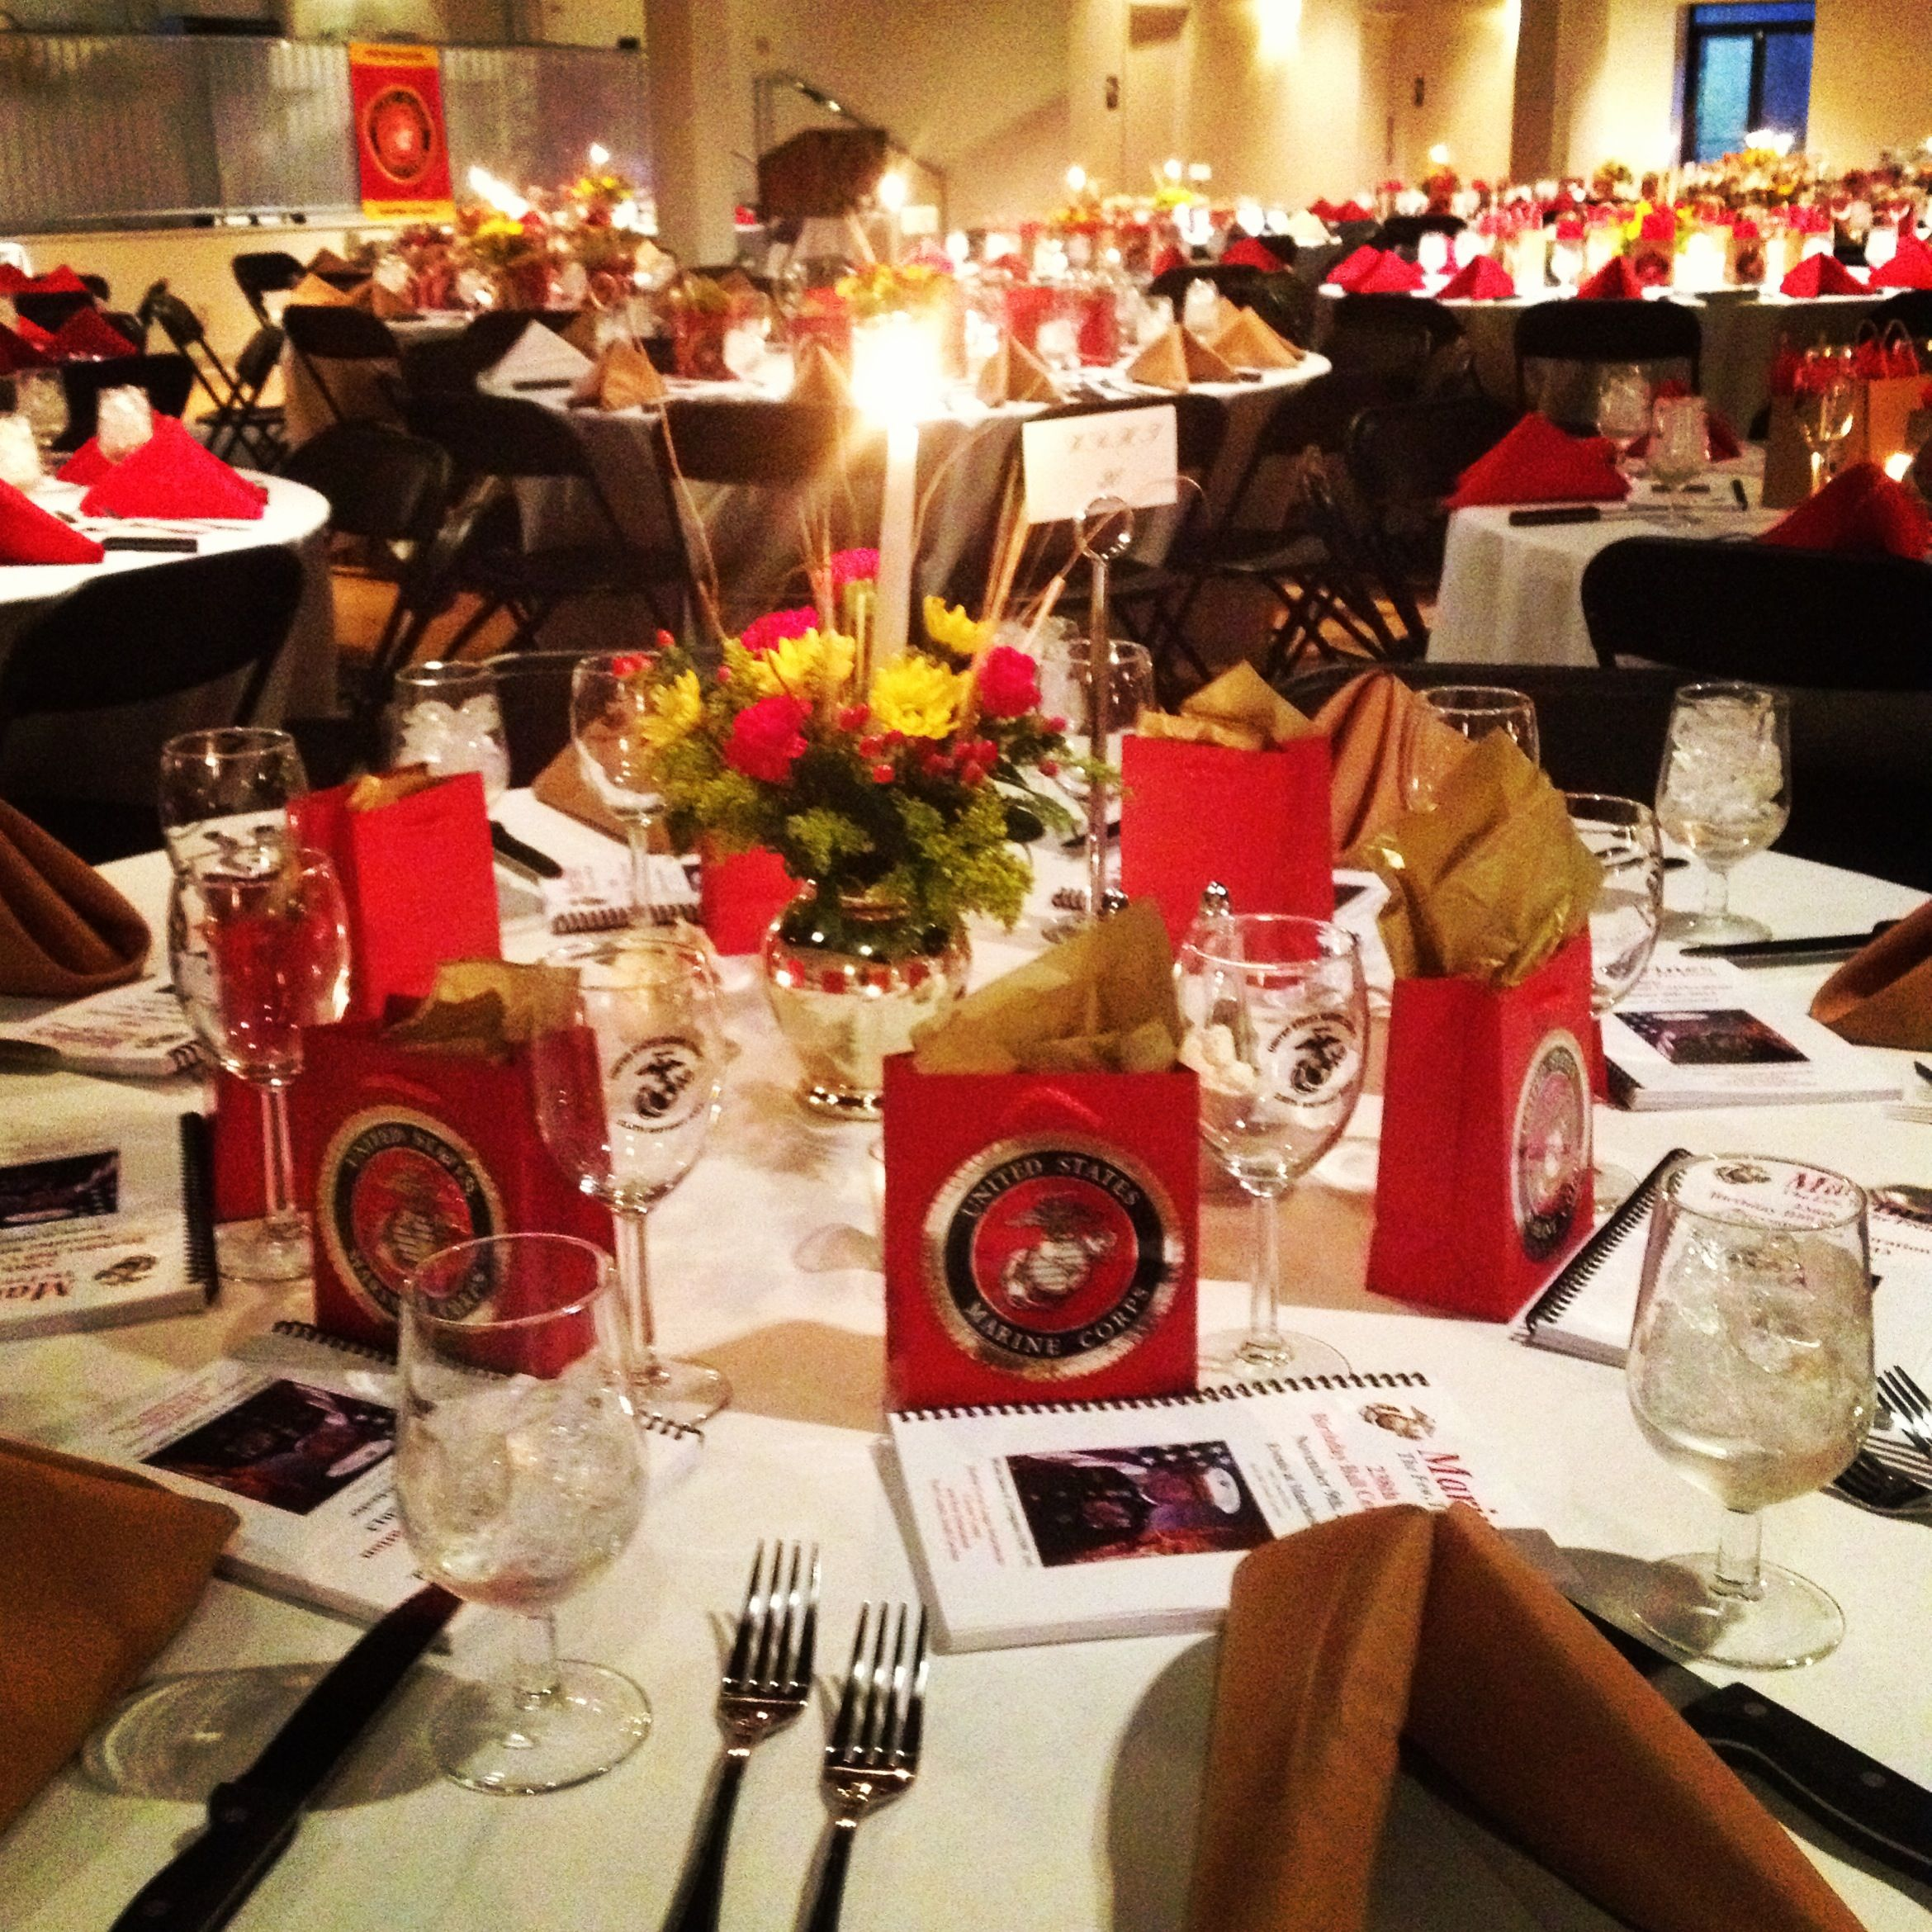 Tablescape from the Marine Corps Ball in 2019 Marine